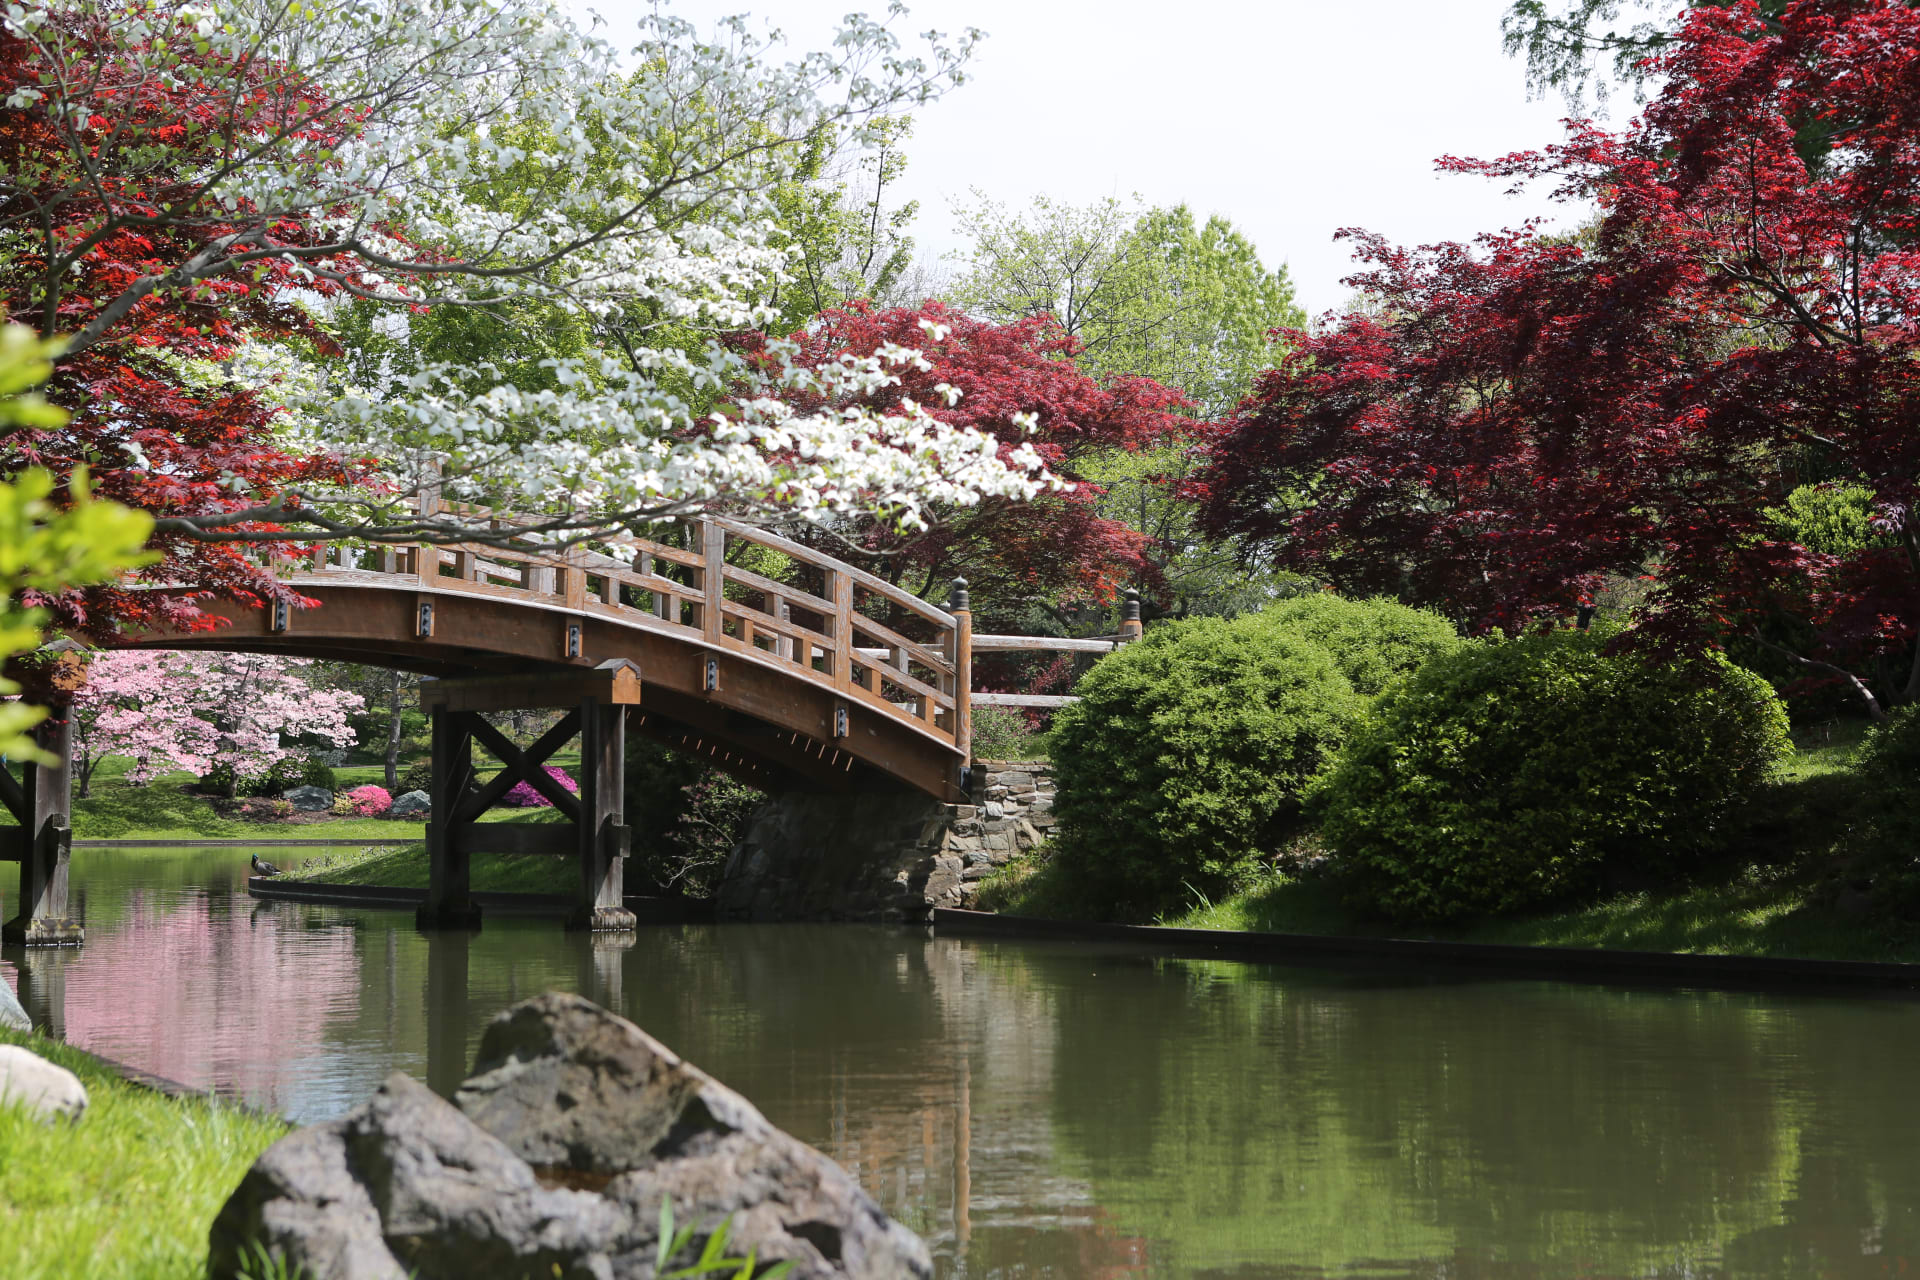 USA Road Trip - Aaron & Patrick Hit the Road: Origami in the Missouri Botanical Garden